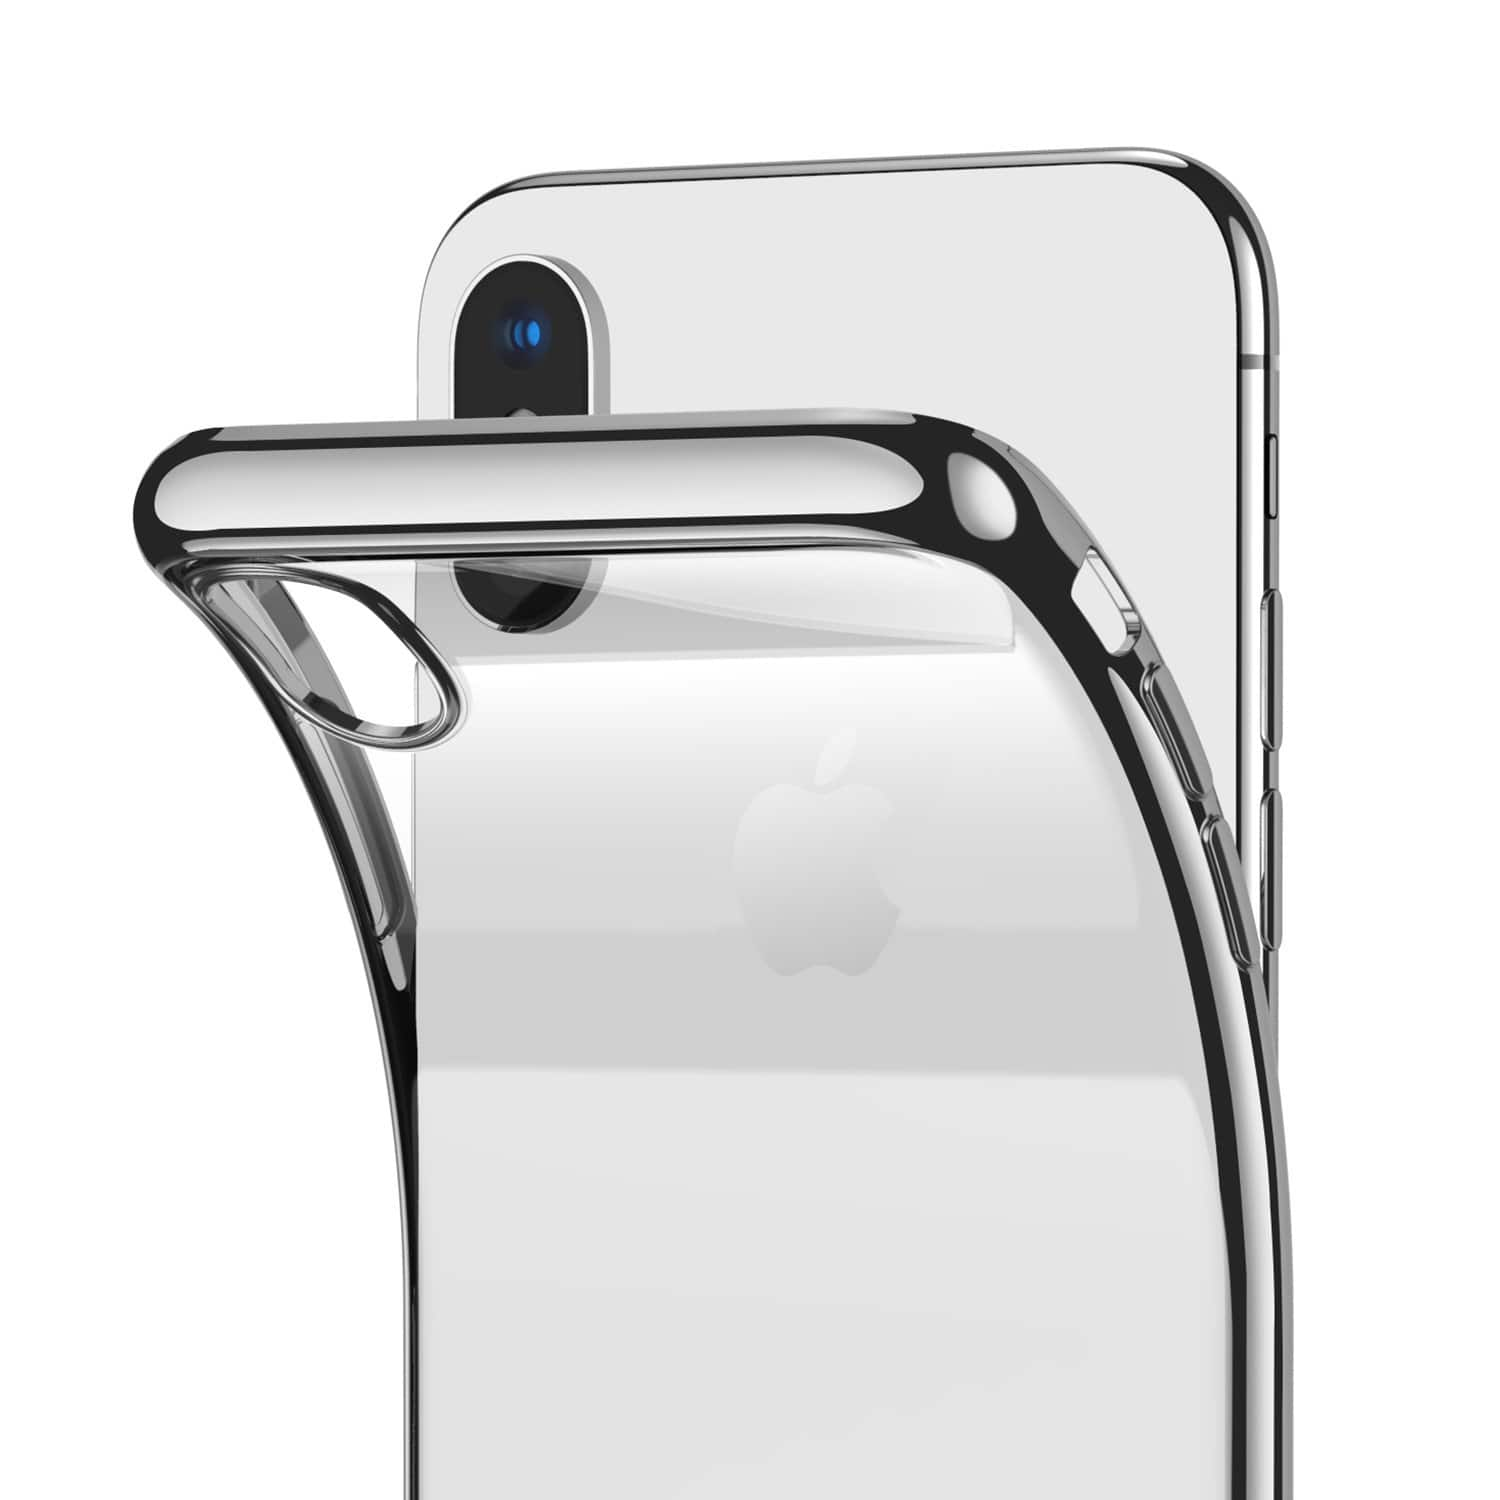 RANVOO iPhone X Case Clear Soft TPU Design, Supports Wireless Charging $1.99 AC + FS w/ Prime